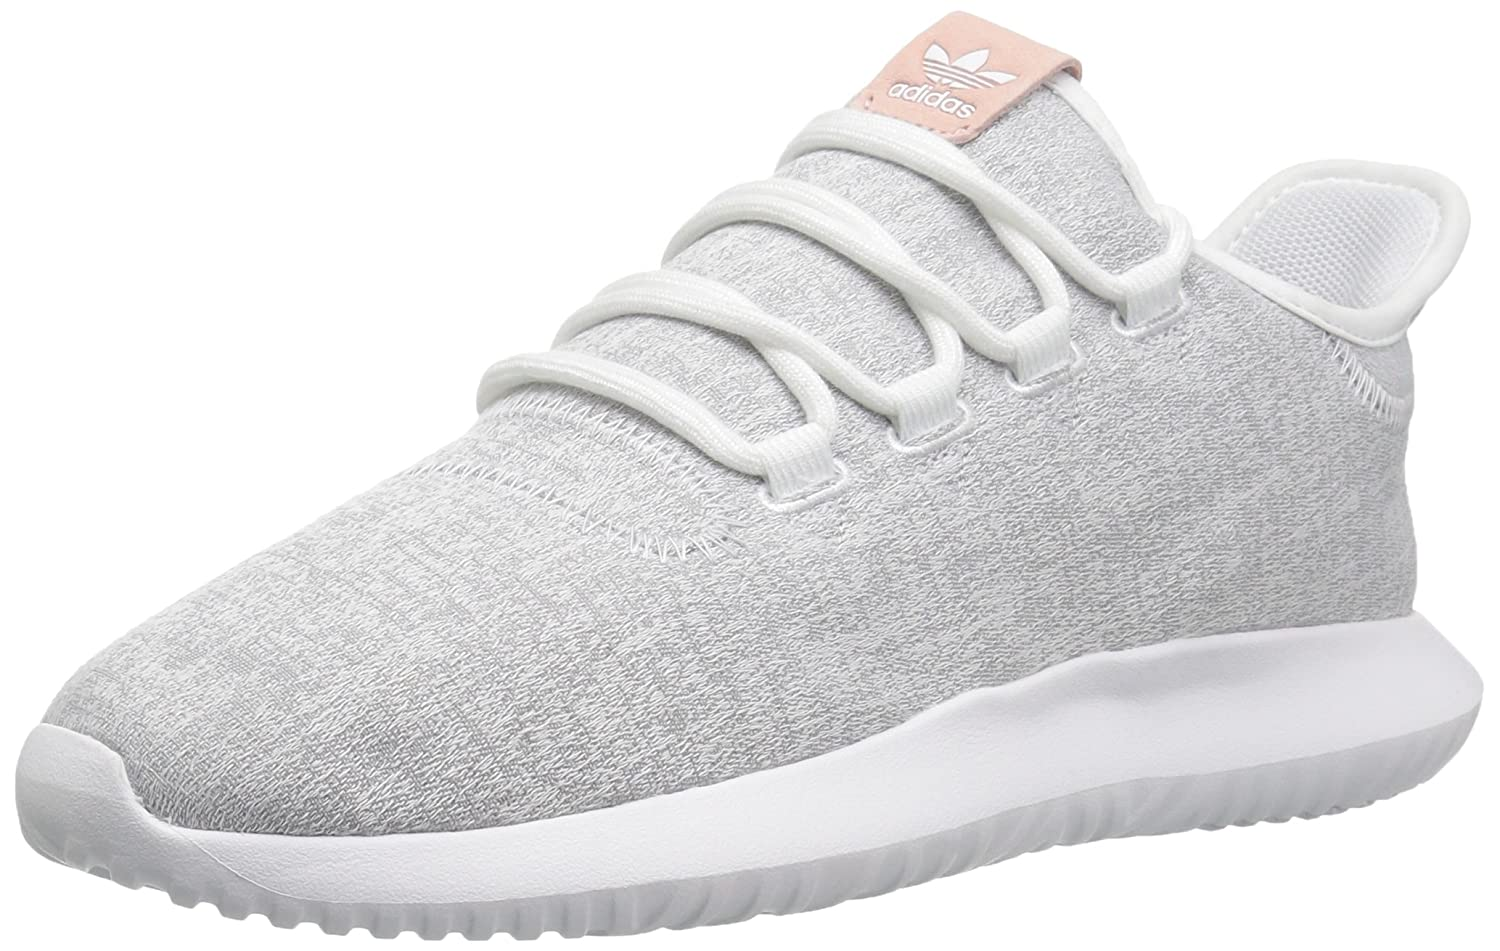 adidas Originals Women's Tubular Shadow W Fashion Sneaker B01NCM6YHT 7.5 B(M) US|White/Grey Two/White